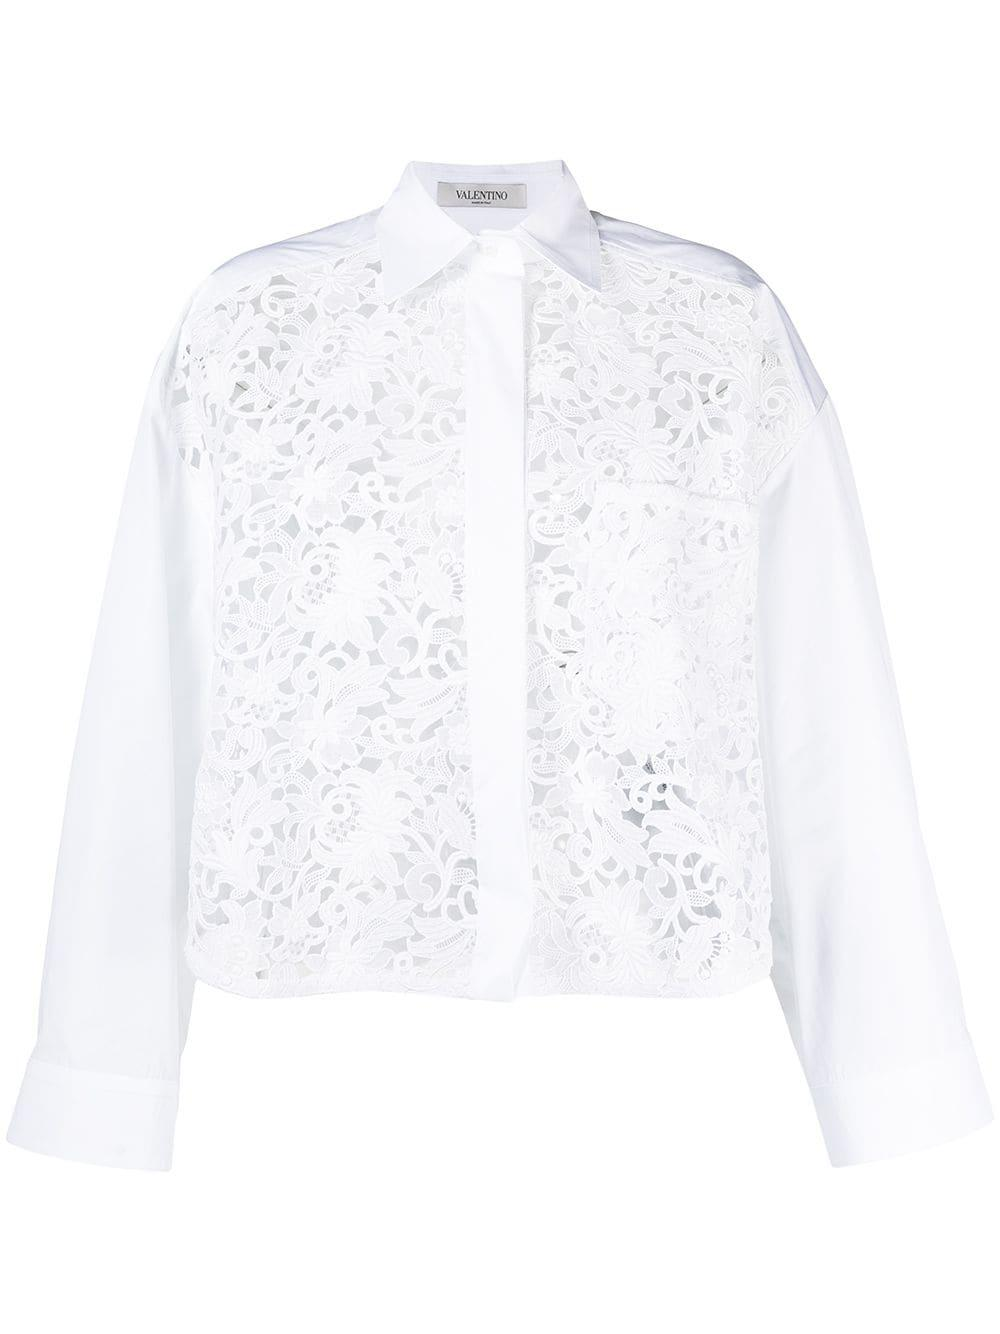 Floral Embroidered Shirt Item # VB0AB2B64HP